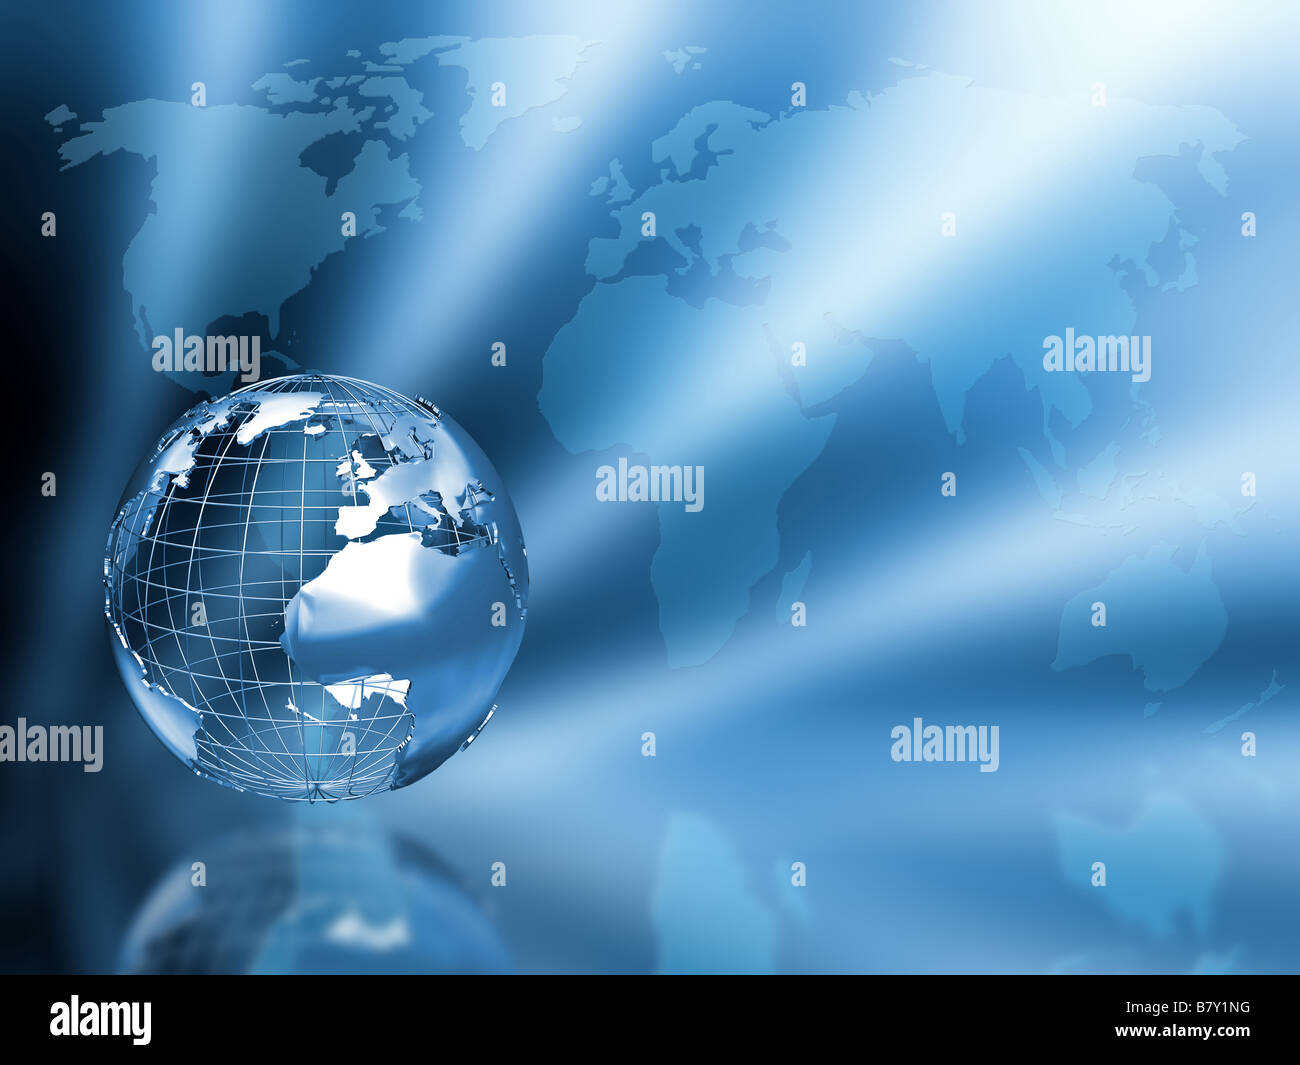 3d render of a globe on a world map background stock photo 3d render of a globe on a world map background gumiabroncs Image collections